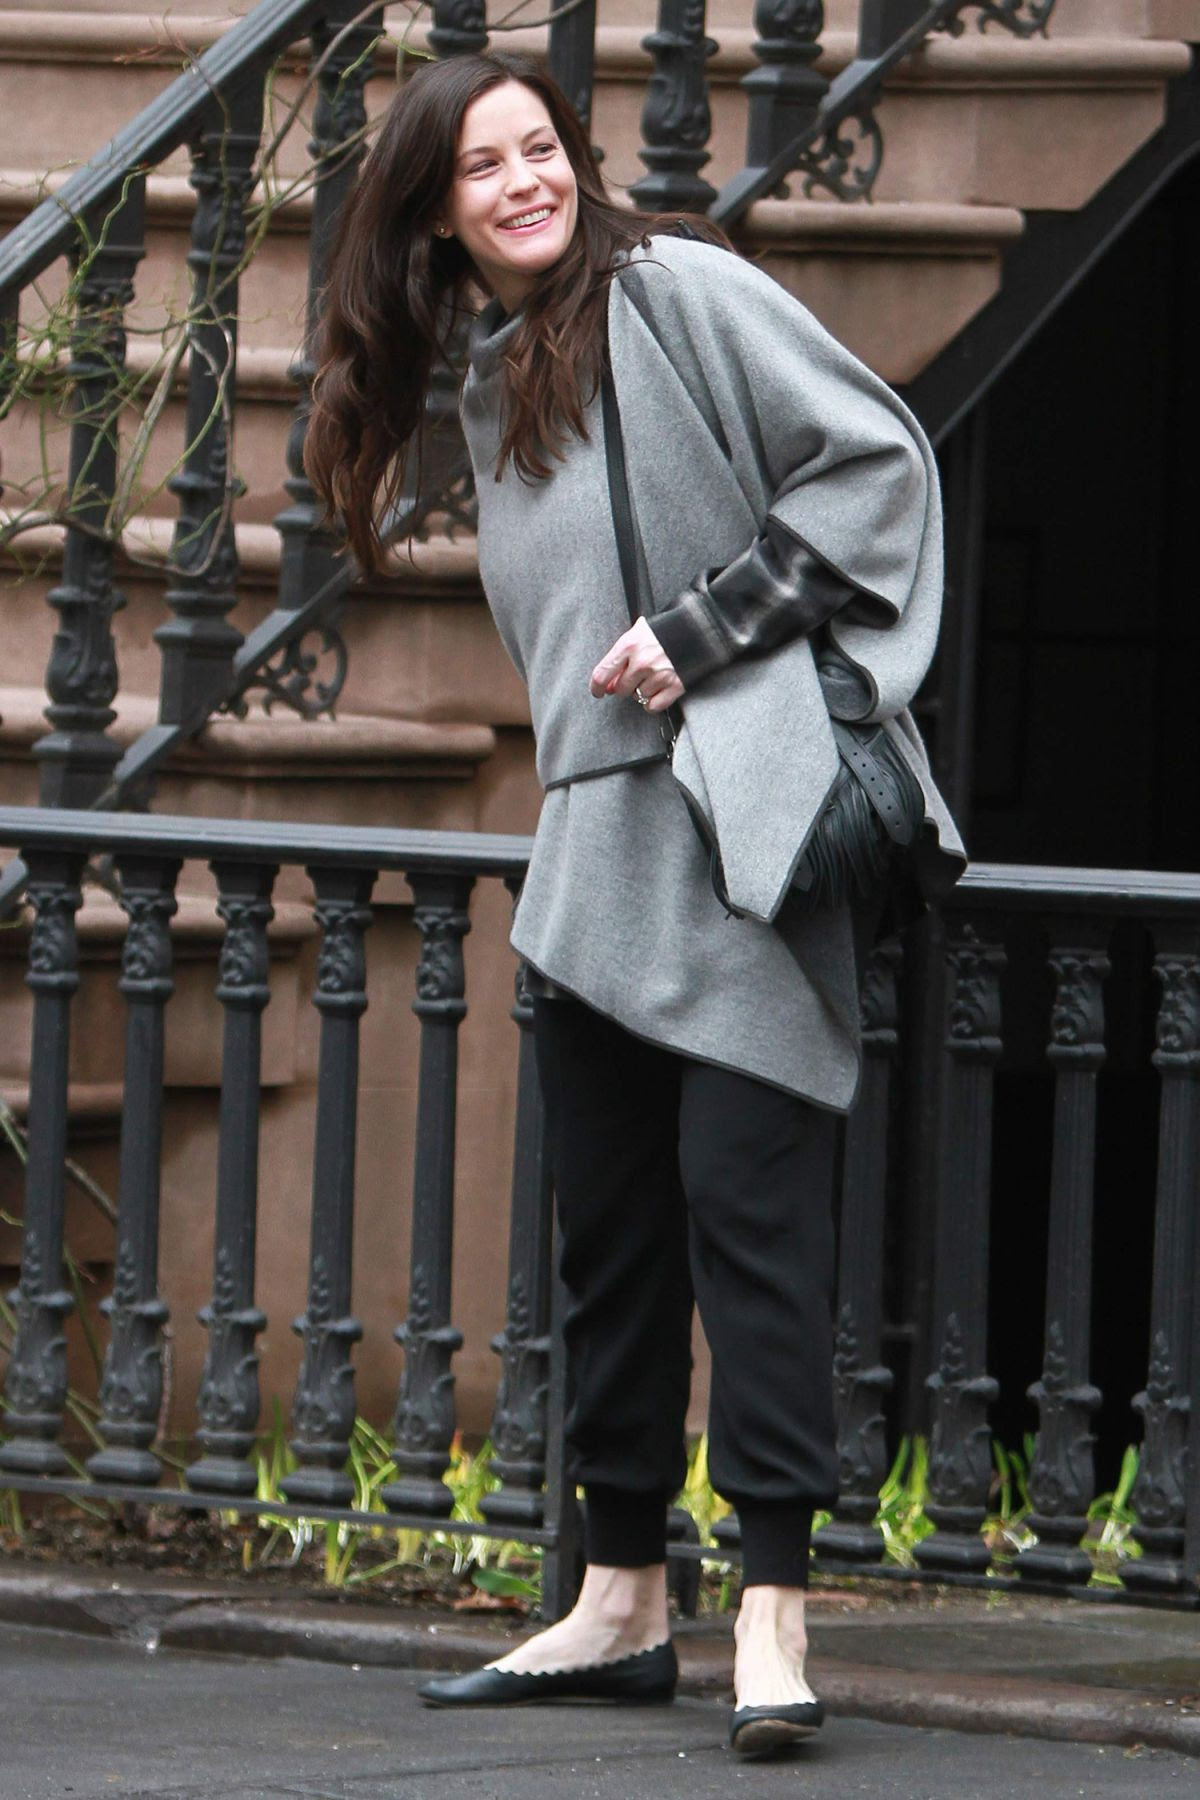 LIV TYLER Leaves Her Home in New York